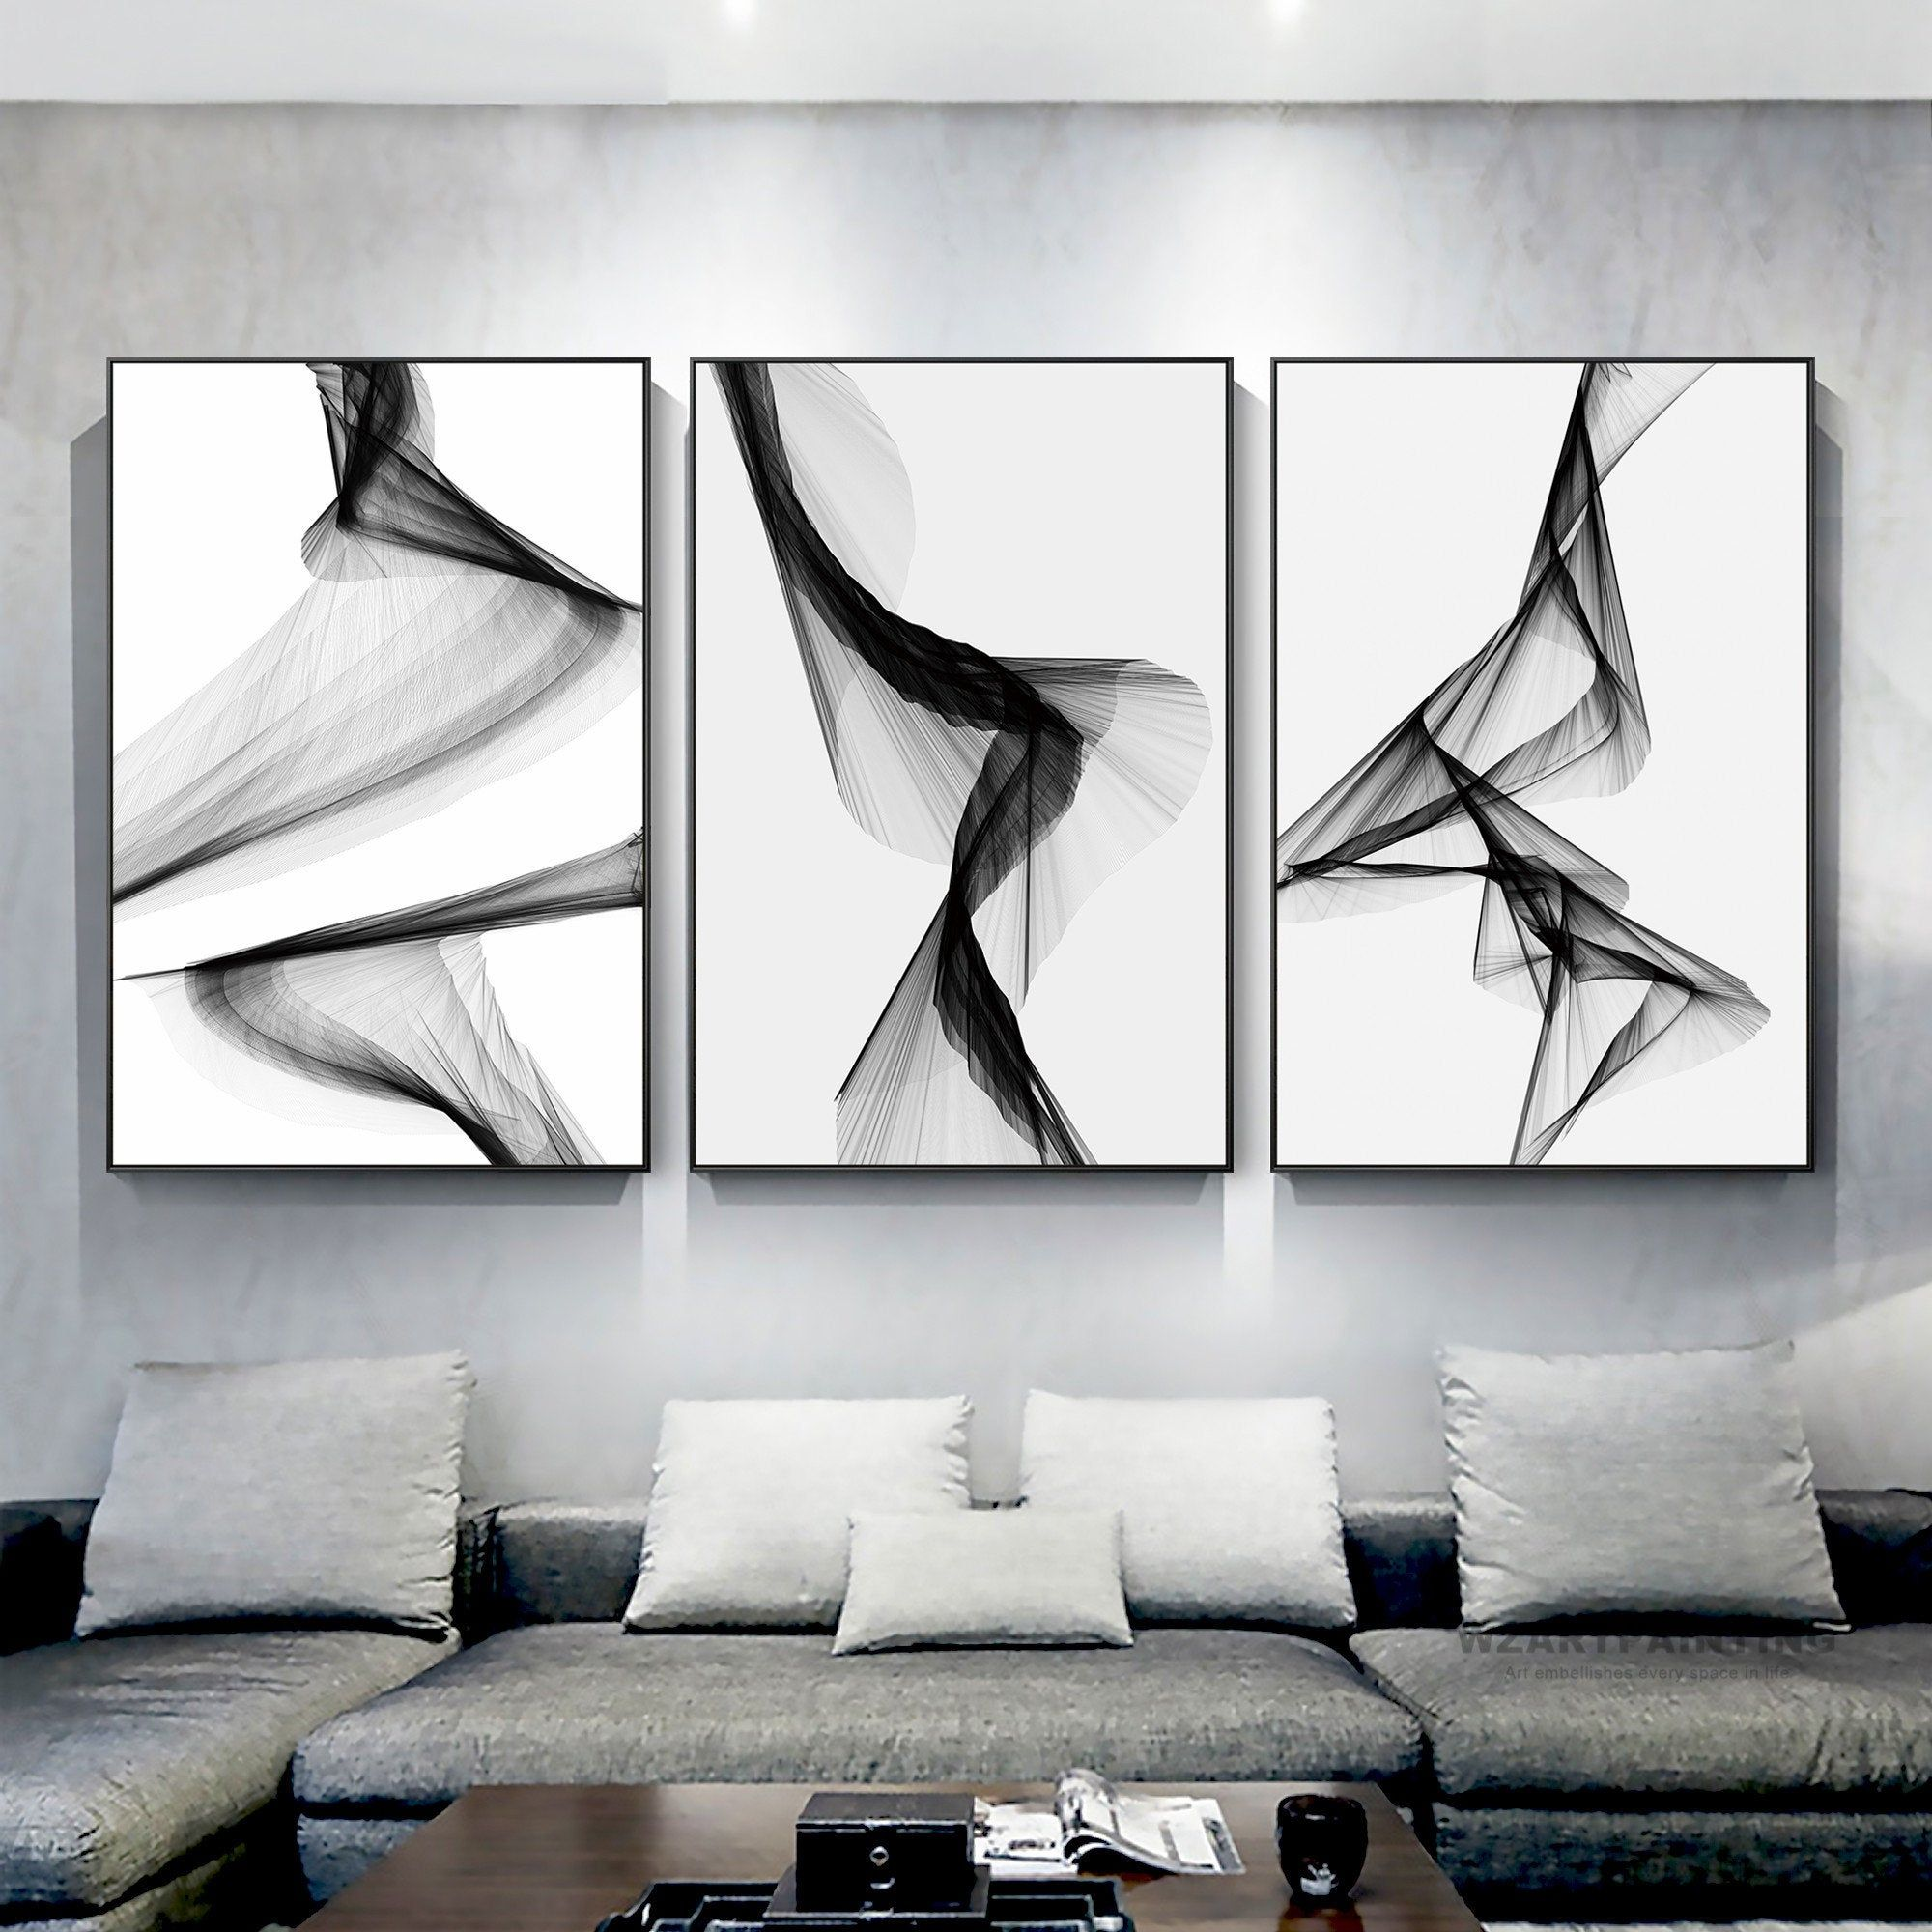 Abstract Original Acrylic Painting Black White Blue Geometric Bold Monochrome Art Wall Hanging for Gallery Wall Collection